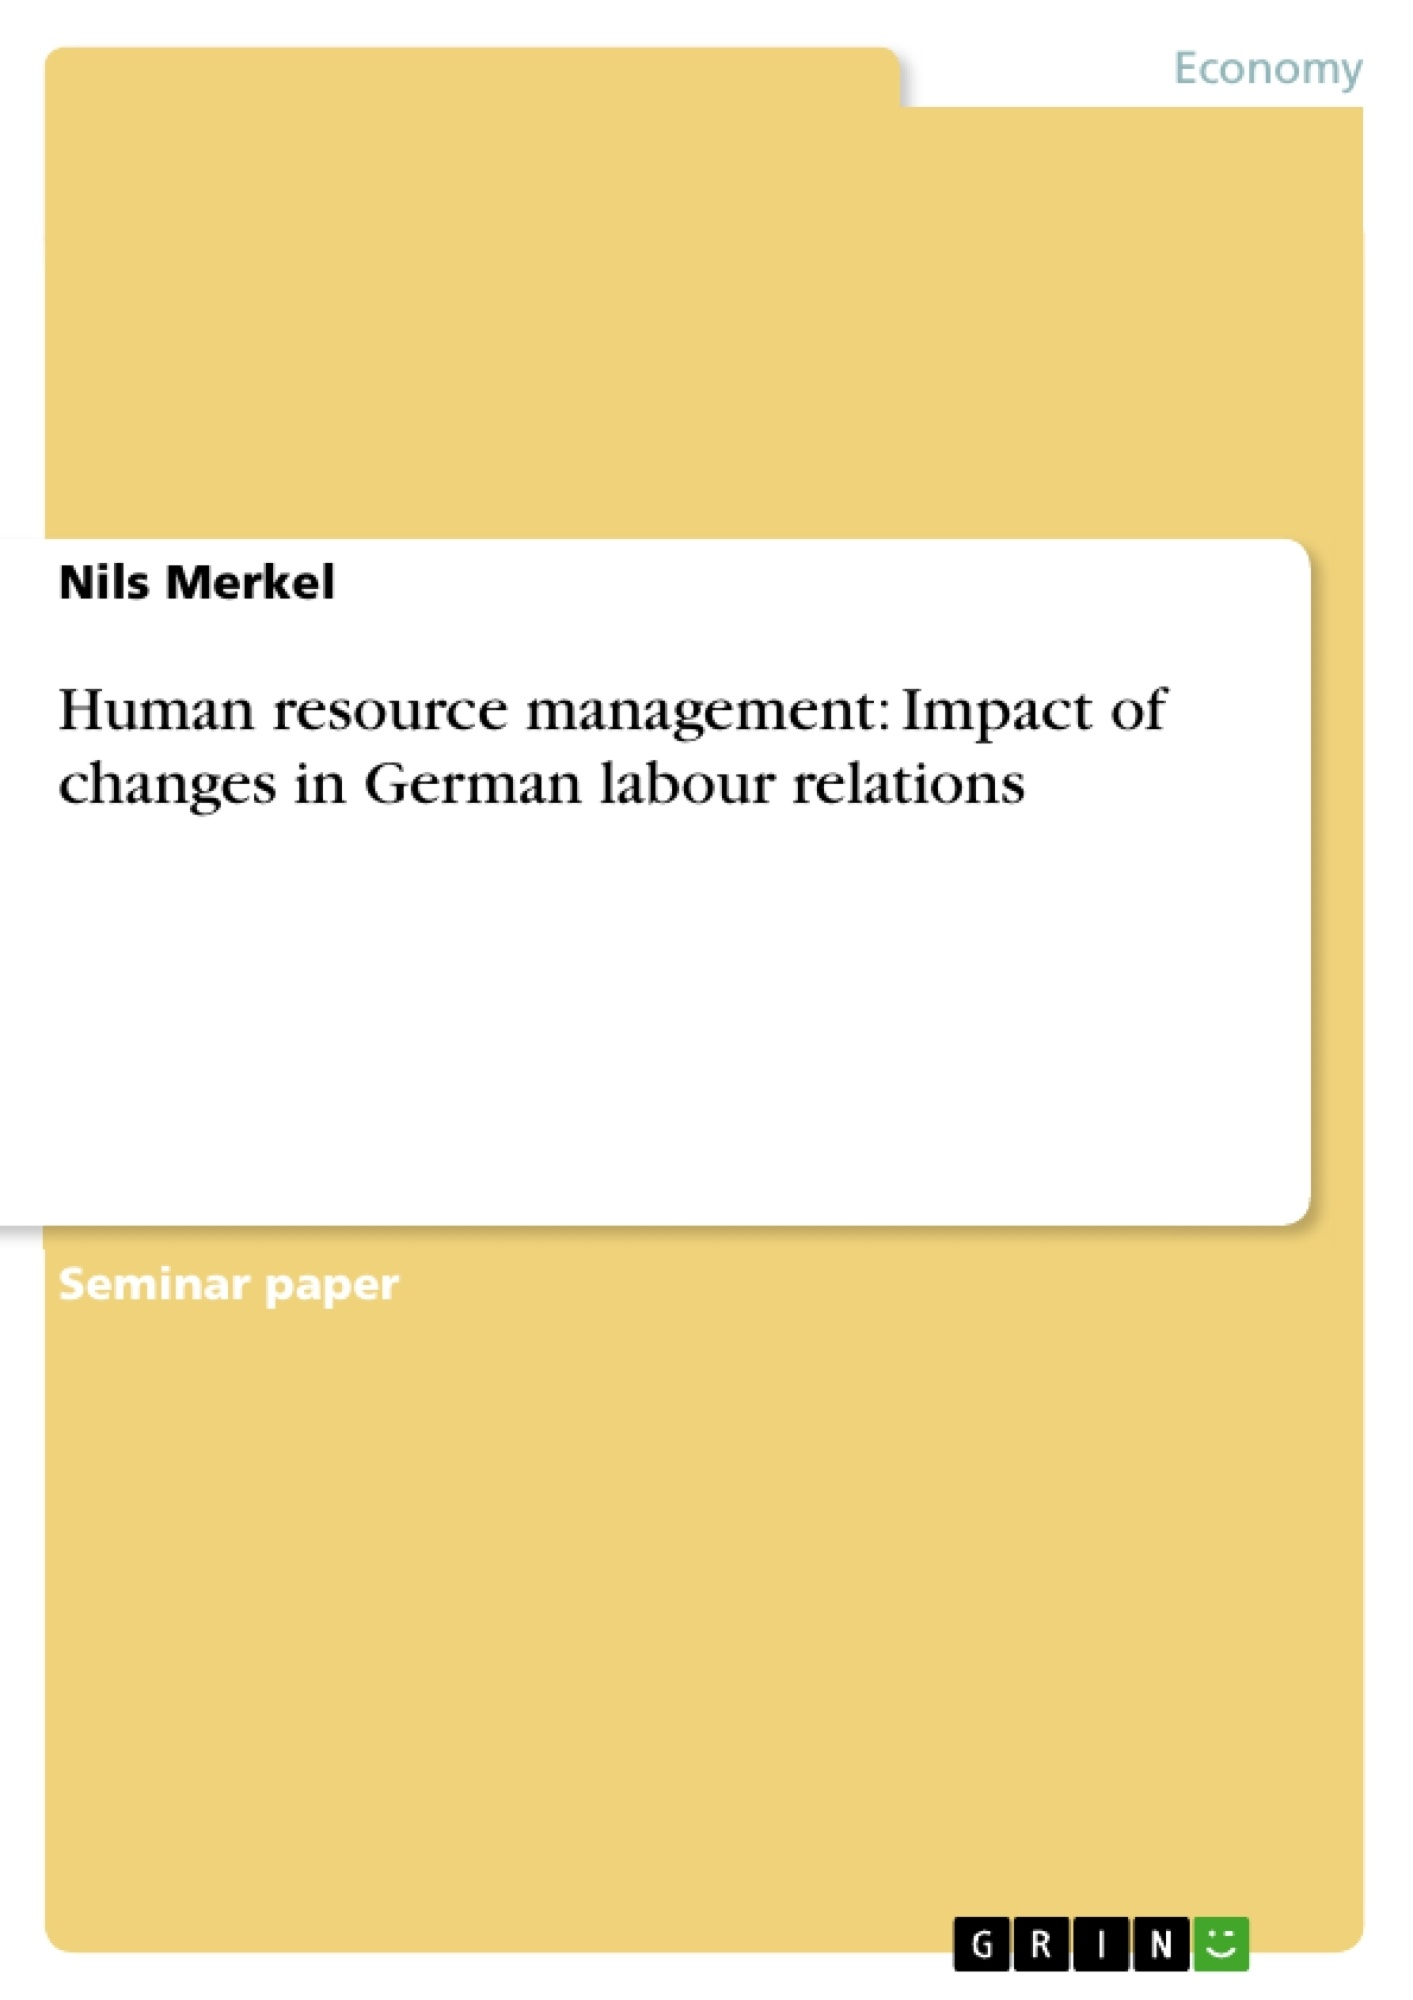 human resource management and migrant labour essay Migrant worker management toolkit: a global framework migrant worker management toolkit: a global framework 3 human resources management.